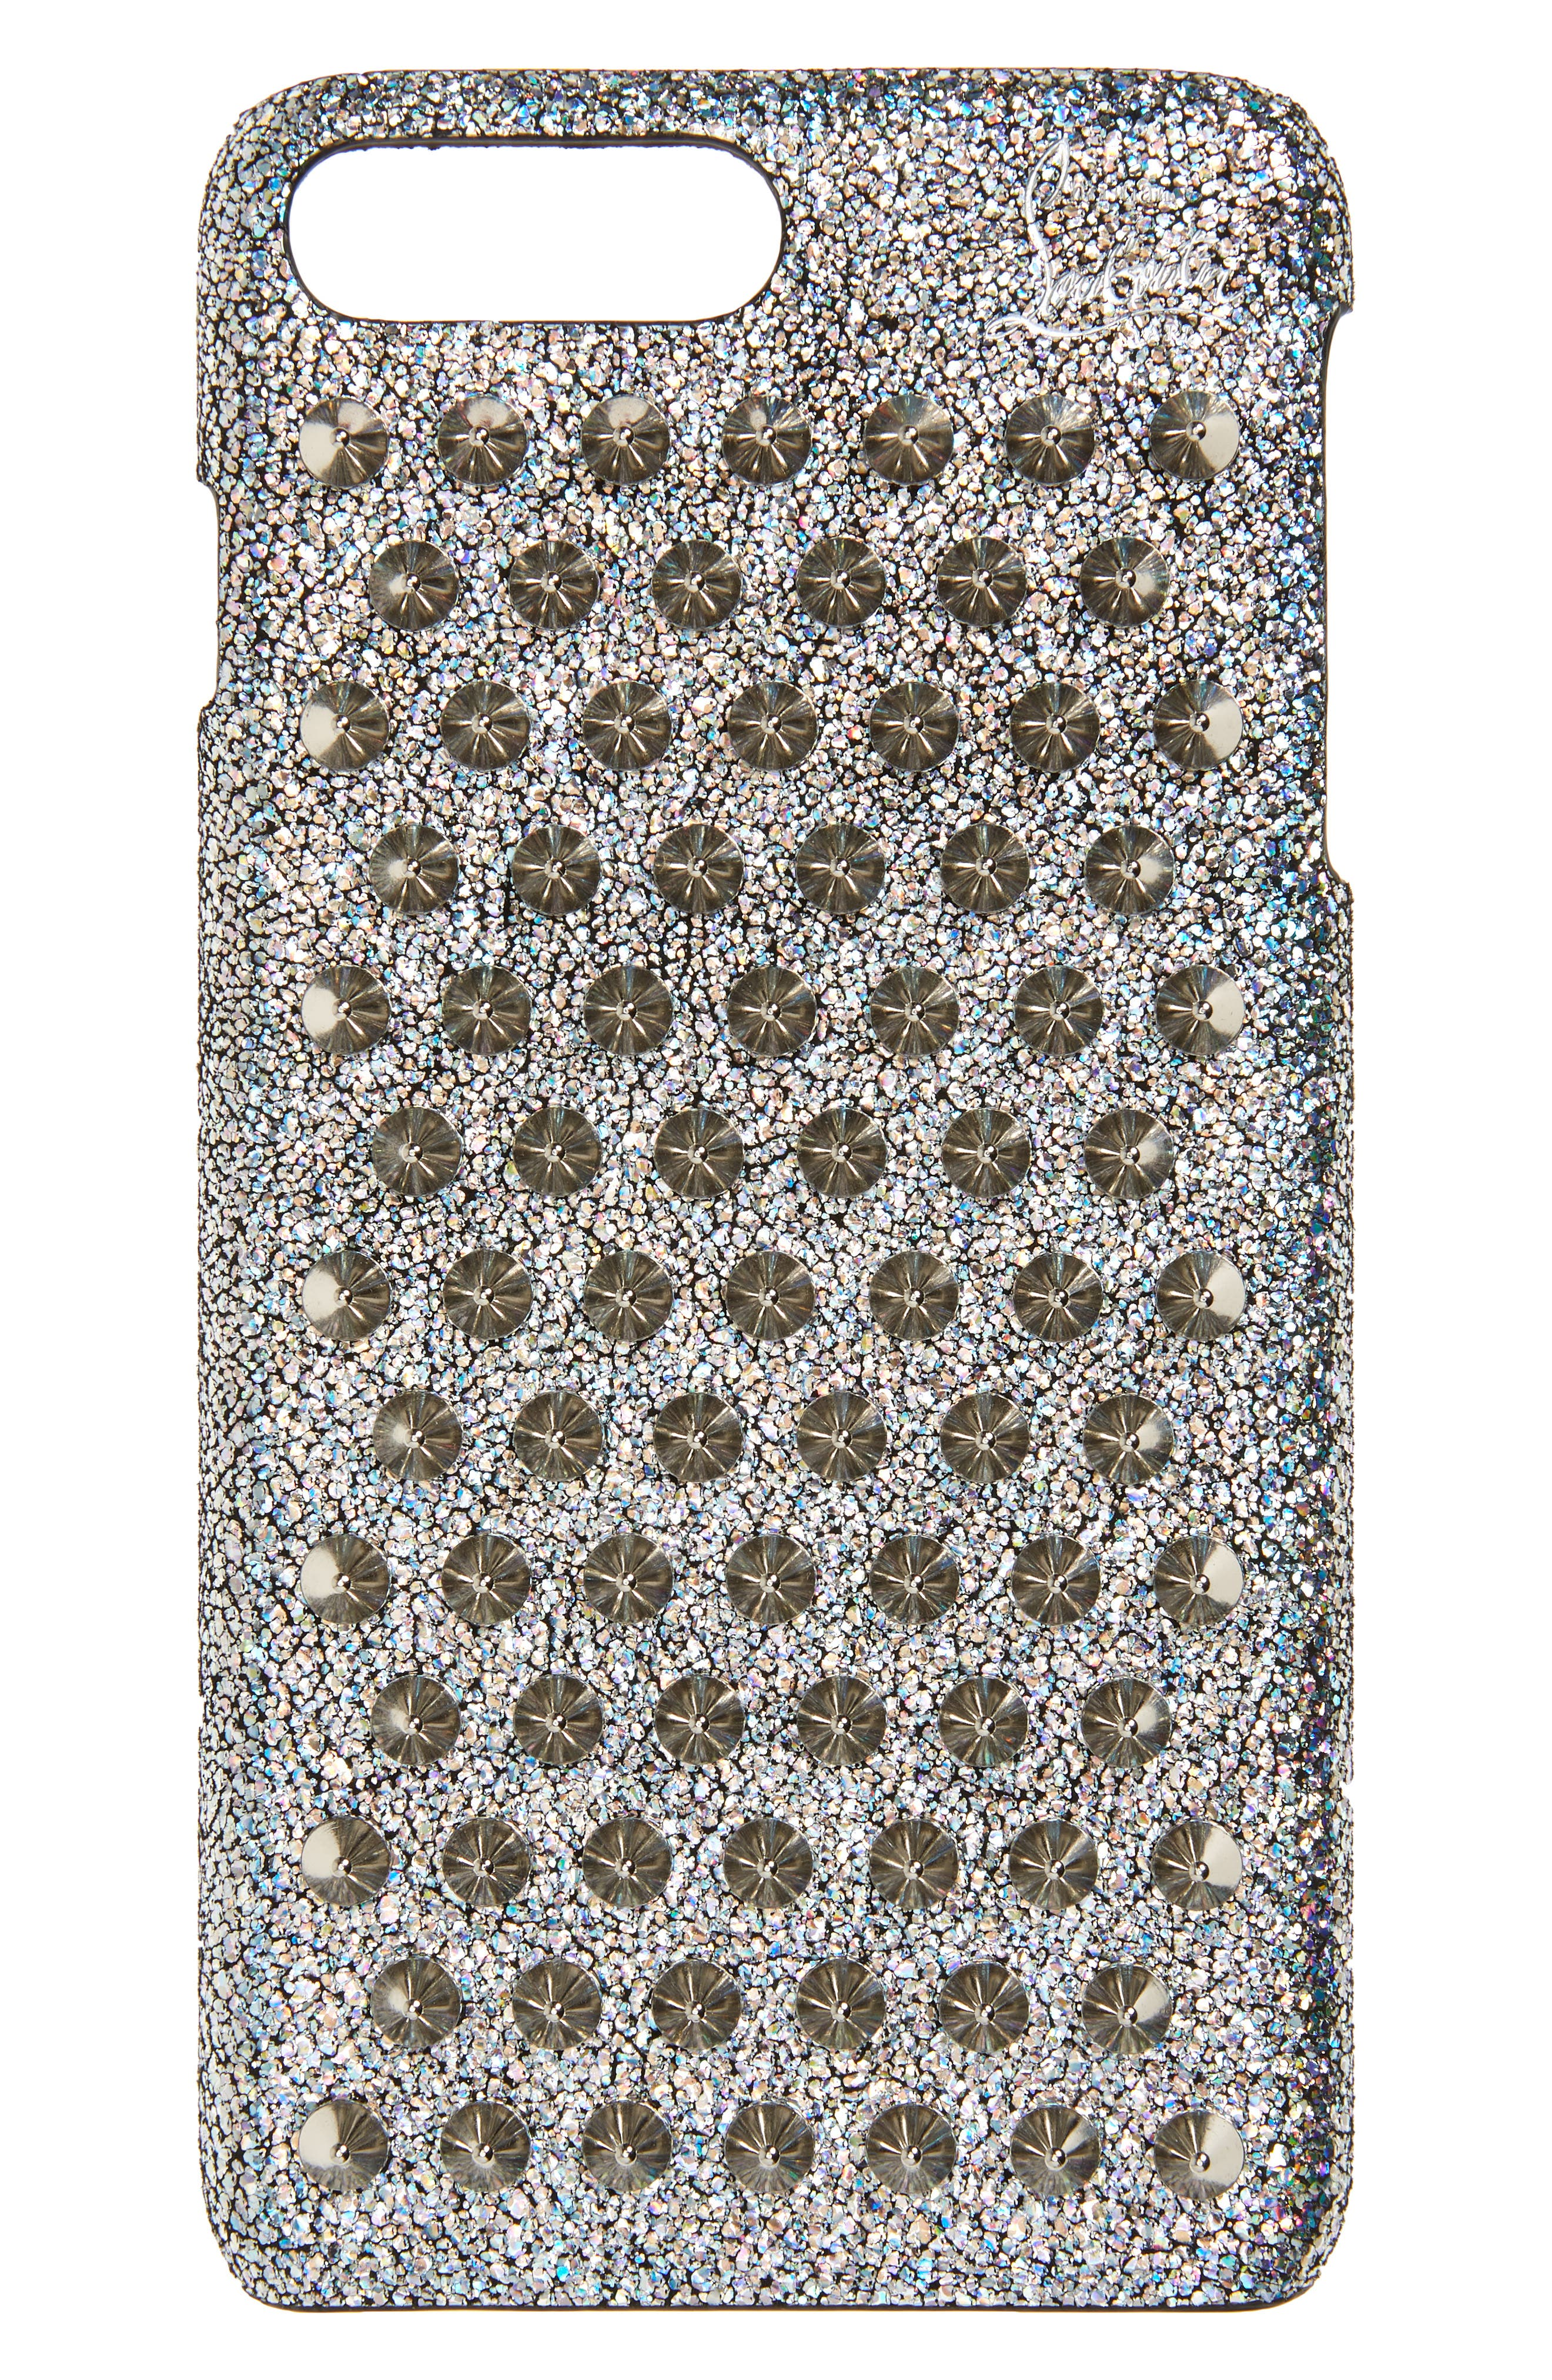 CHRISTIAN LOUBOUTIN Loubiphone iPhone 7/8 Case, Main, color, SILVER AB/ SILVER